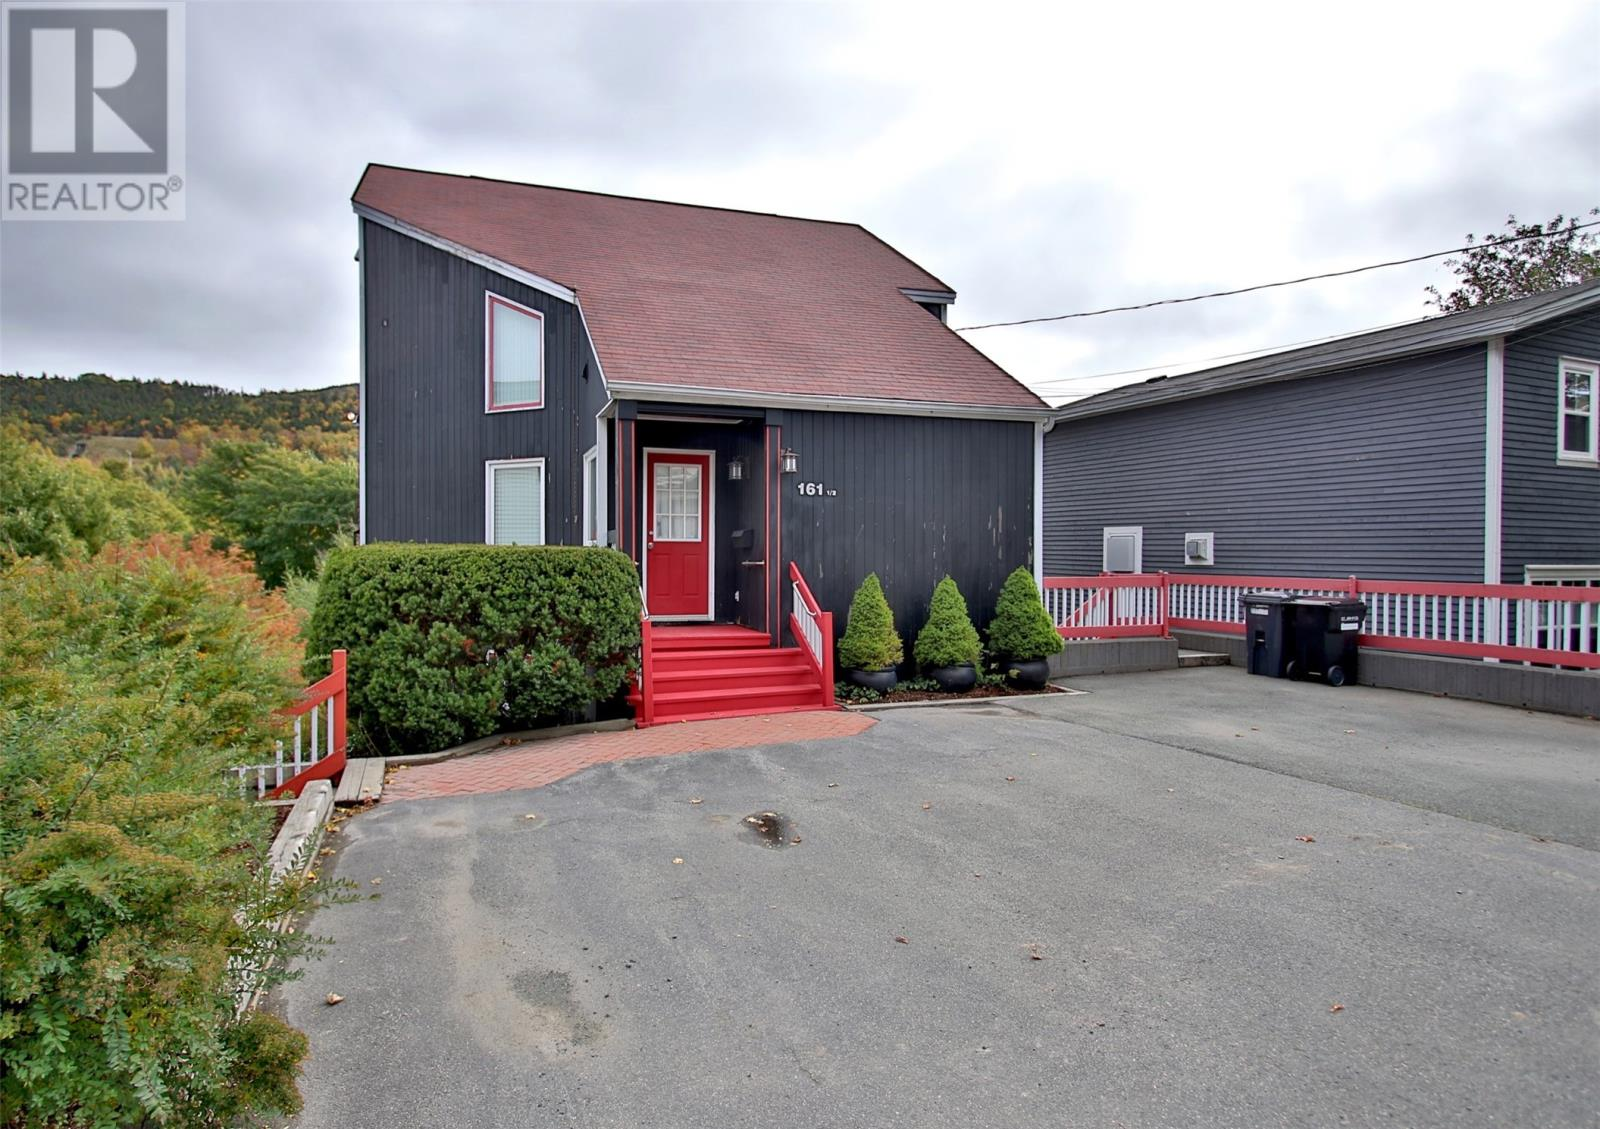 Removed: 1 2 - 161 1 2 Waterford Bridge Road, St Johns, NL - Removed on 2019-11-03 12:09:07